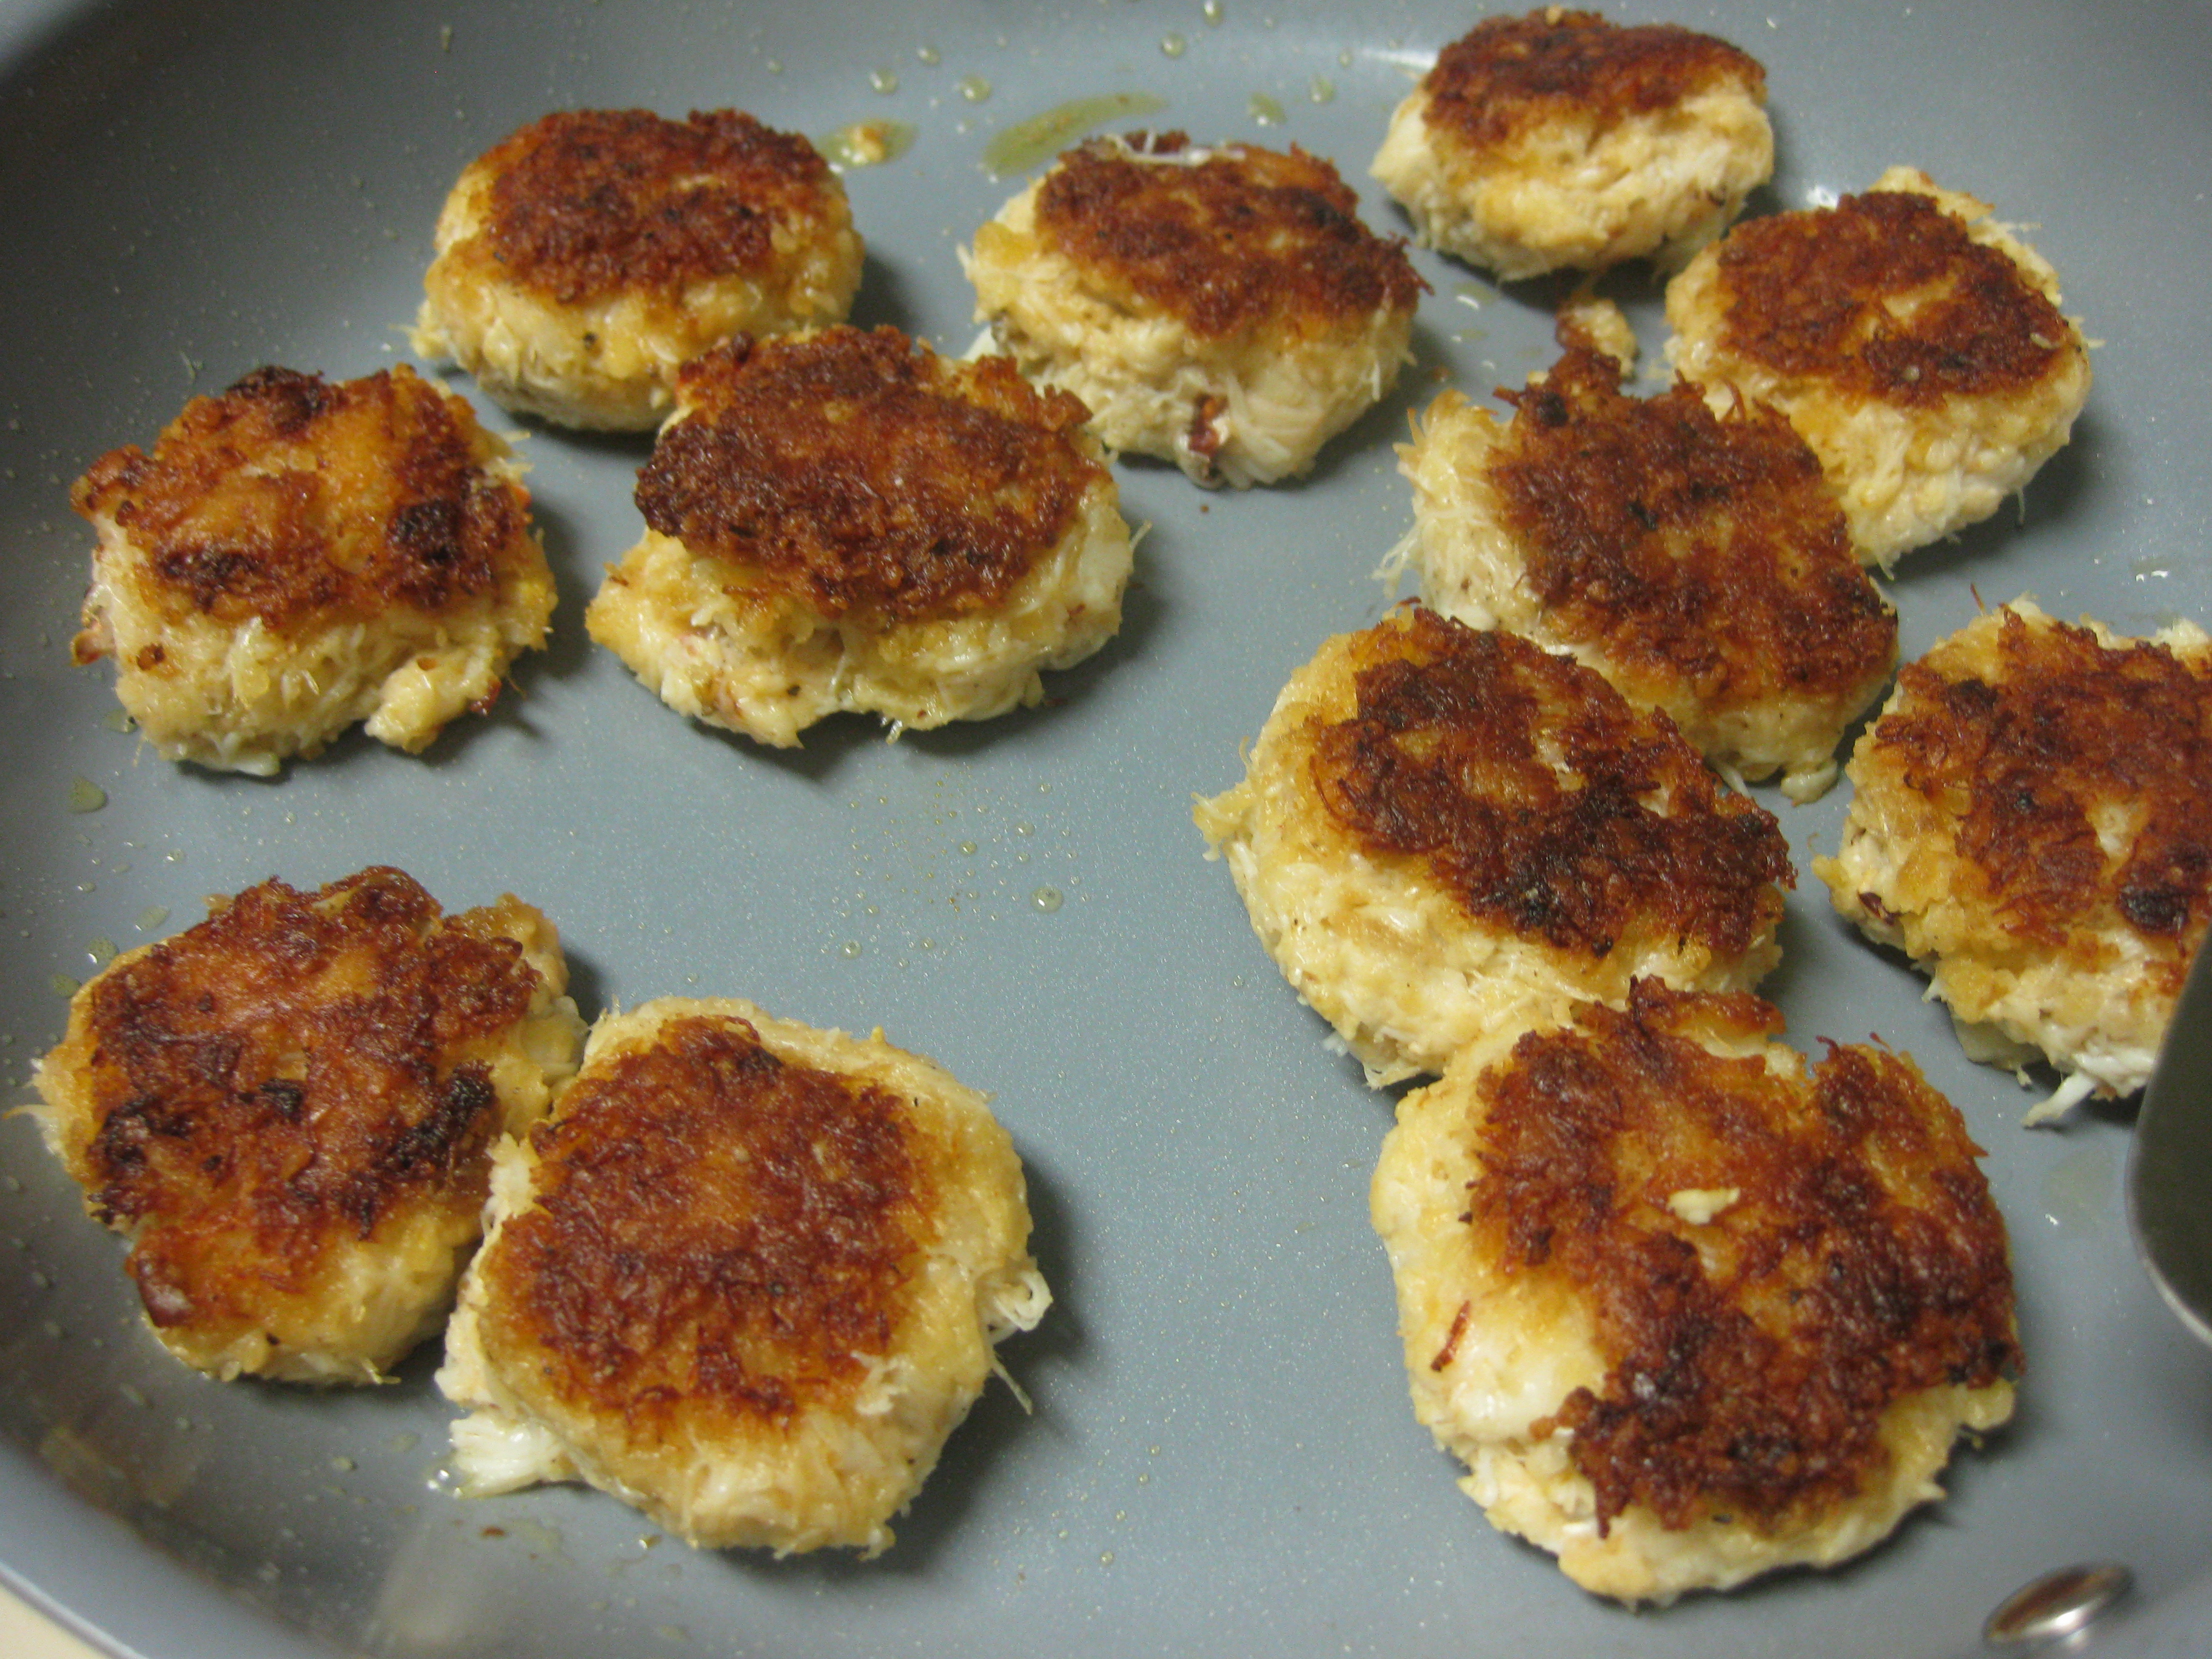 How Long Does It Take To Heat Up Crab Cakes